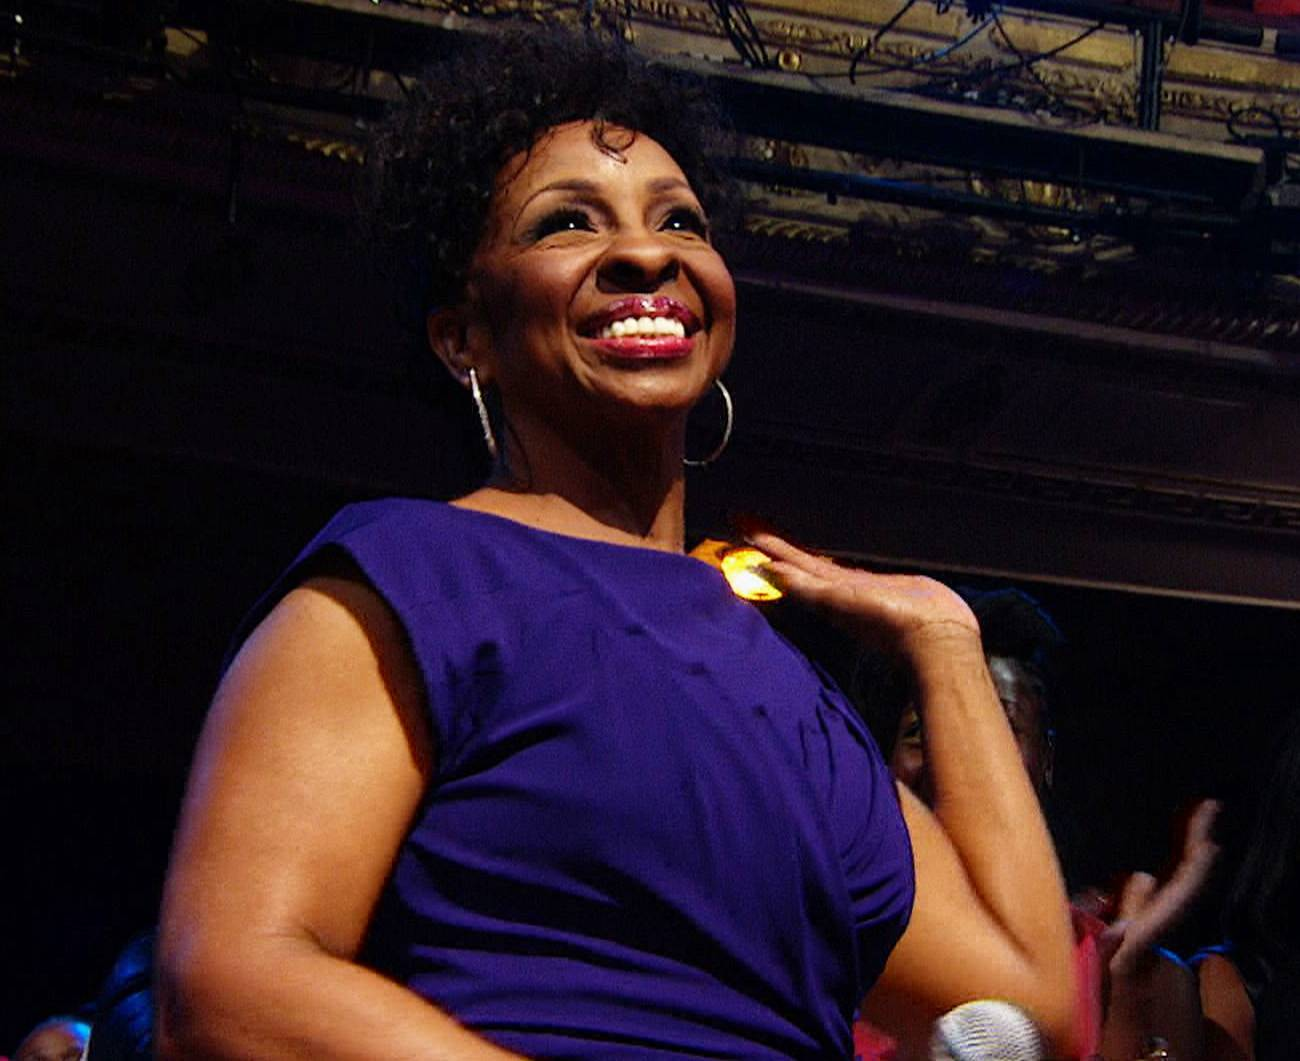 Pay Homage - Like always Gladys Knight was there to provide much needed advice and support to the each of the performers (good, bad and otherwise).   (Photo: BET)